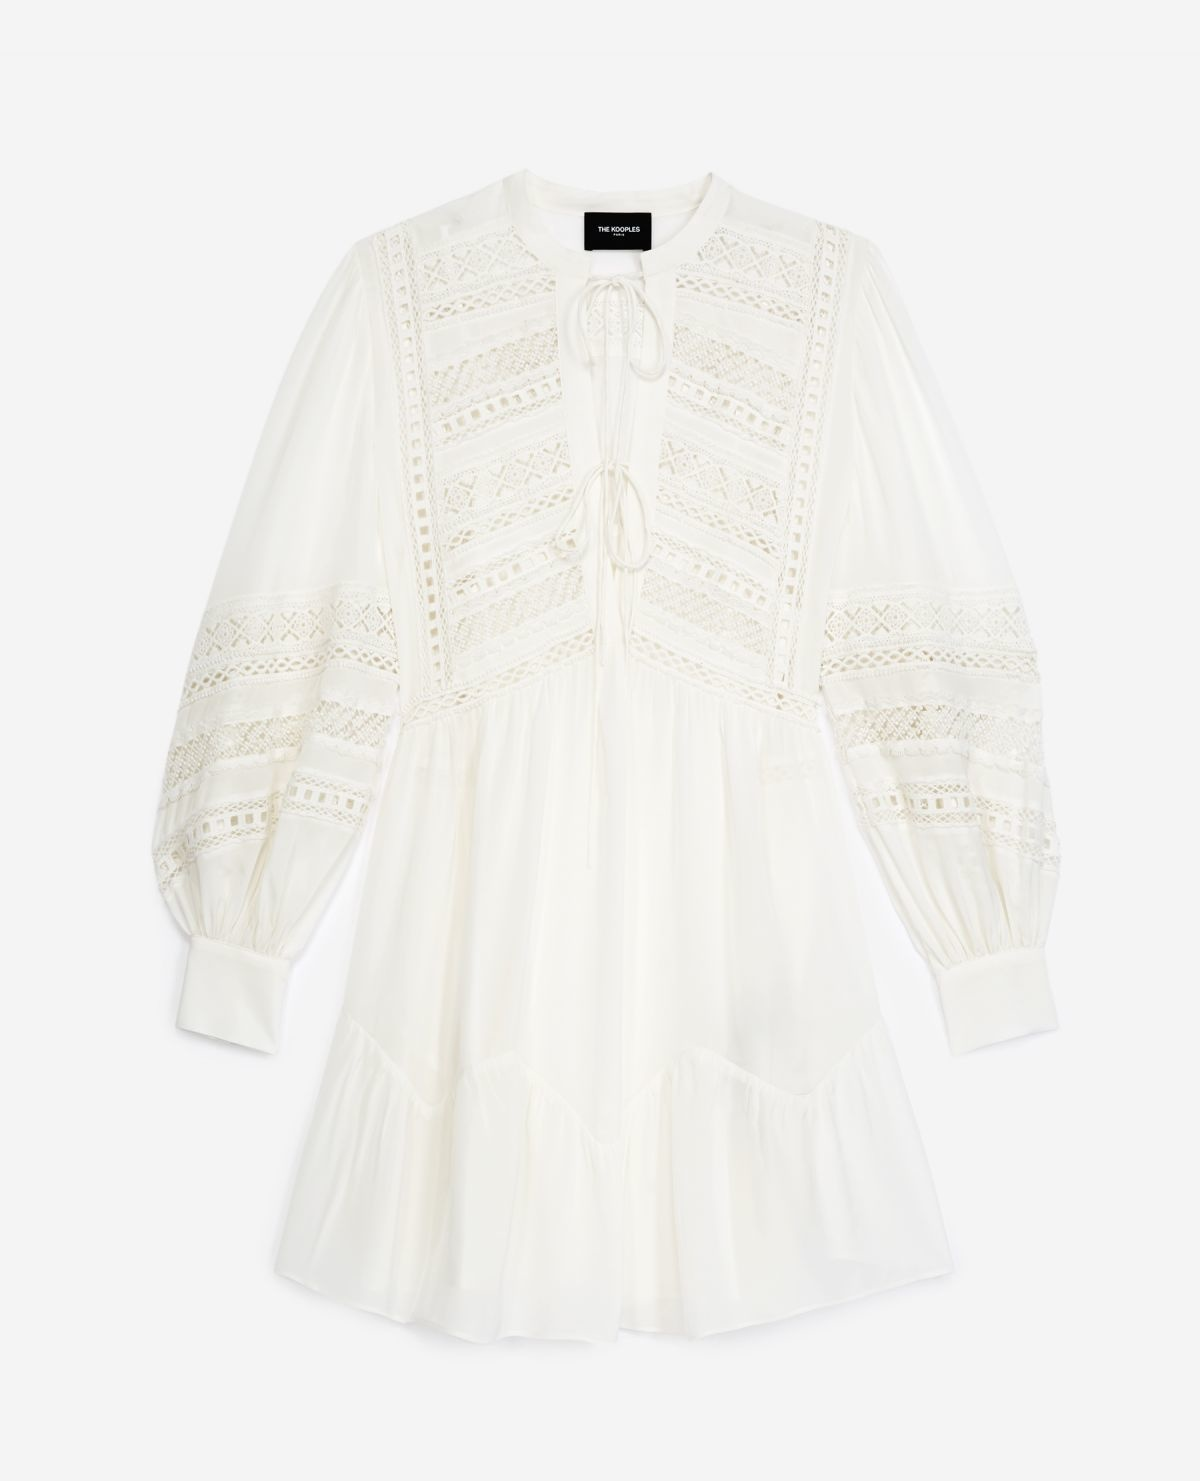 THE KOOPLES robe courte blanche-1